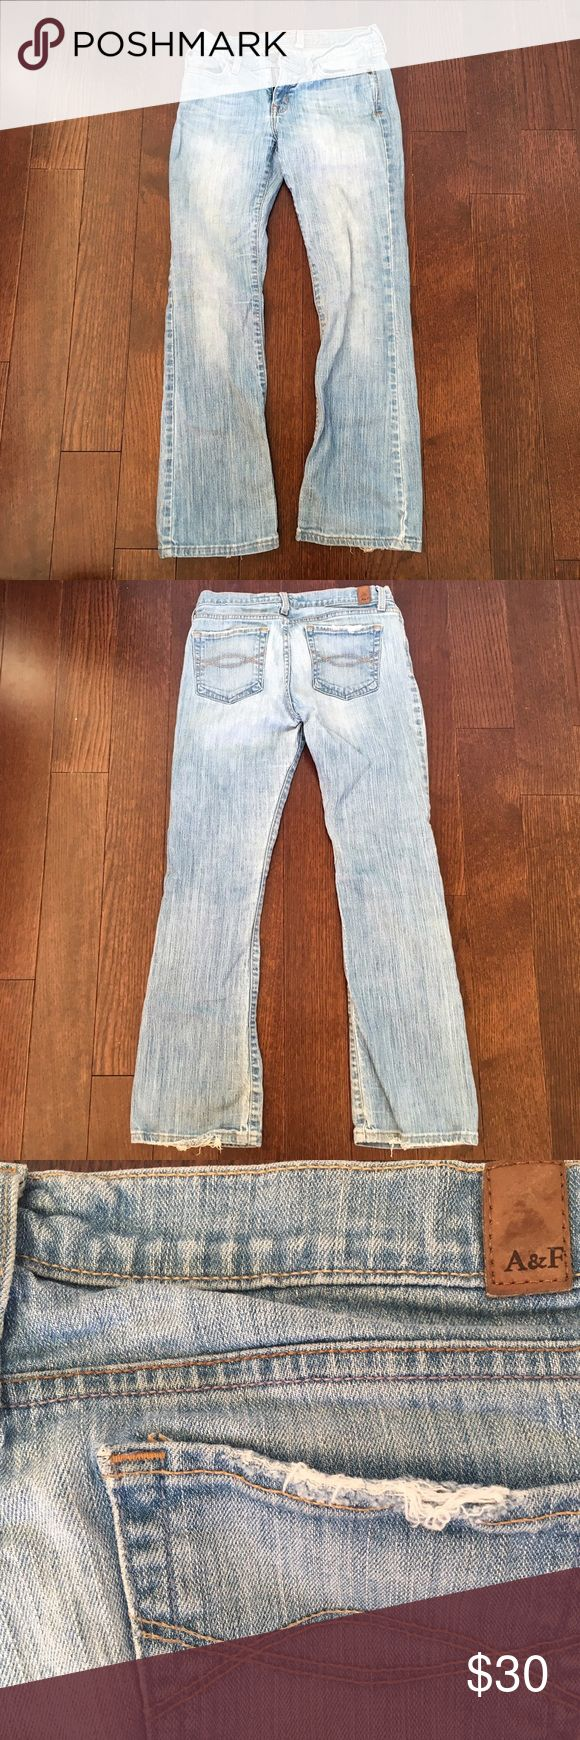 Abercrombie and Fitch Distressed Jeans Distressed light wash denim from Abercrombie and Fitch.  The distressing is subtle and only on the back pockets and bottom cuffs.  The jeans are a boot cut, average rise, and the material is just slightly stretchy. Abercrombie & Fitch Jeans Boot Cut